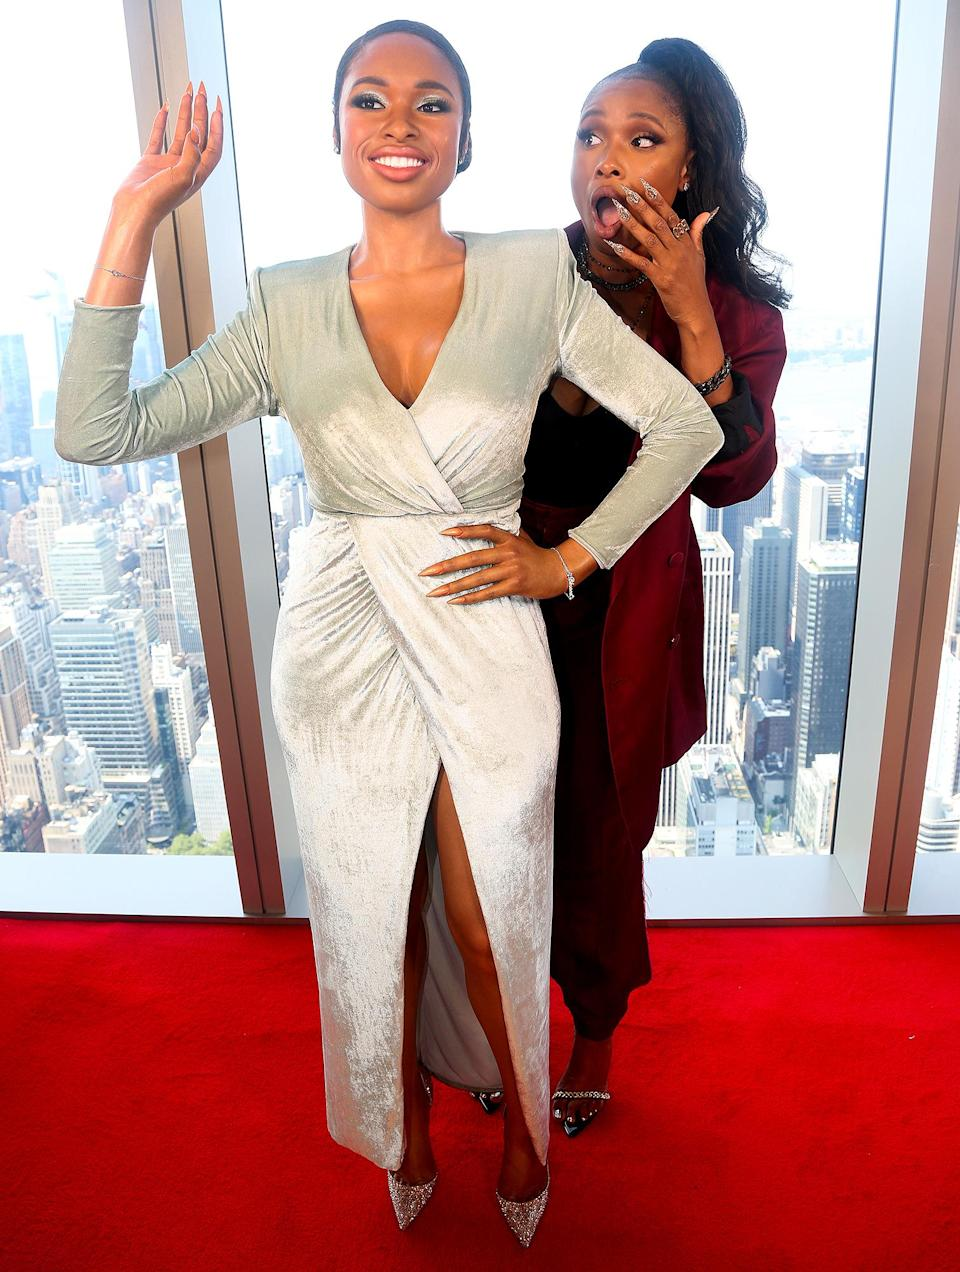 <p>Jennifer Hudson poses next to her wax figure during the unveiling of her Madame Tussauds wax figure at SUMMIT One Vanderbilt on Sept. 12 in N.Y.C.</p>